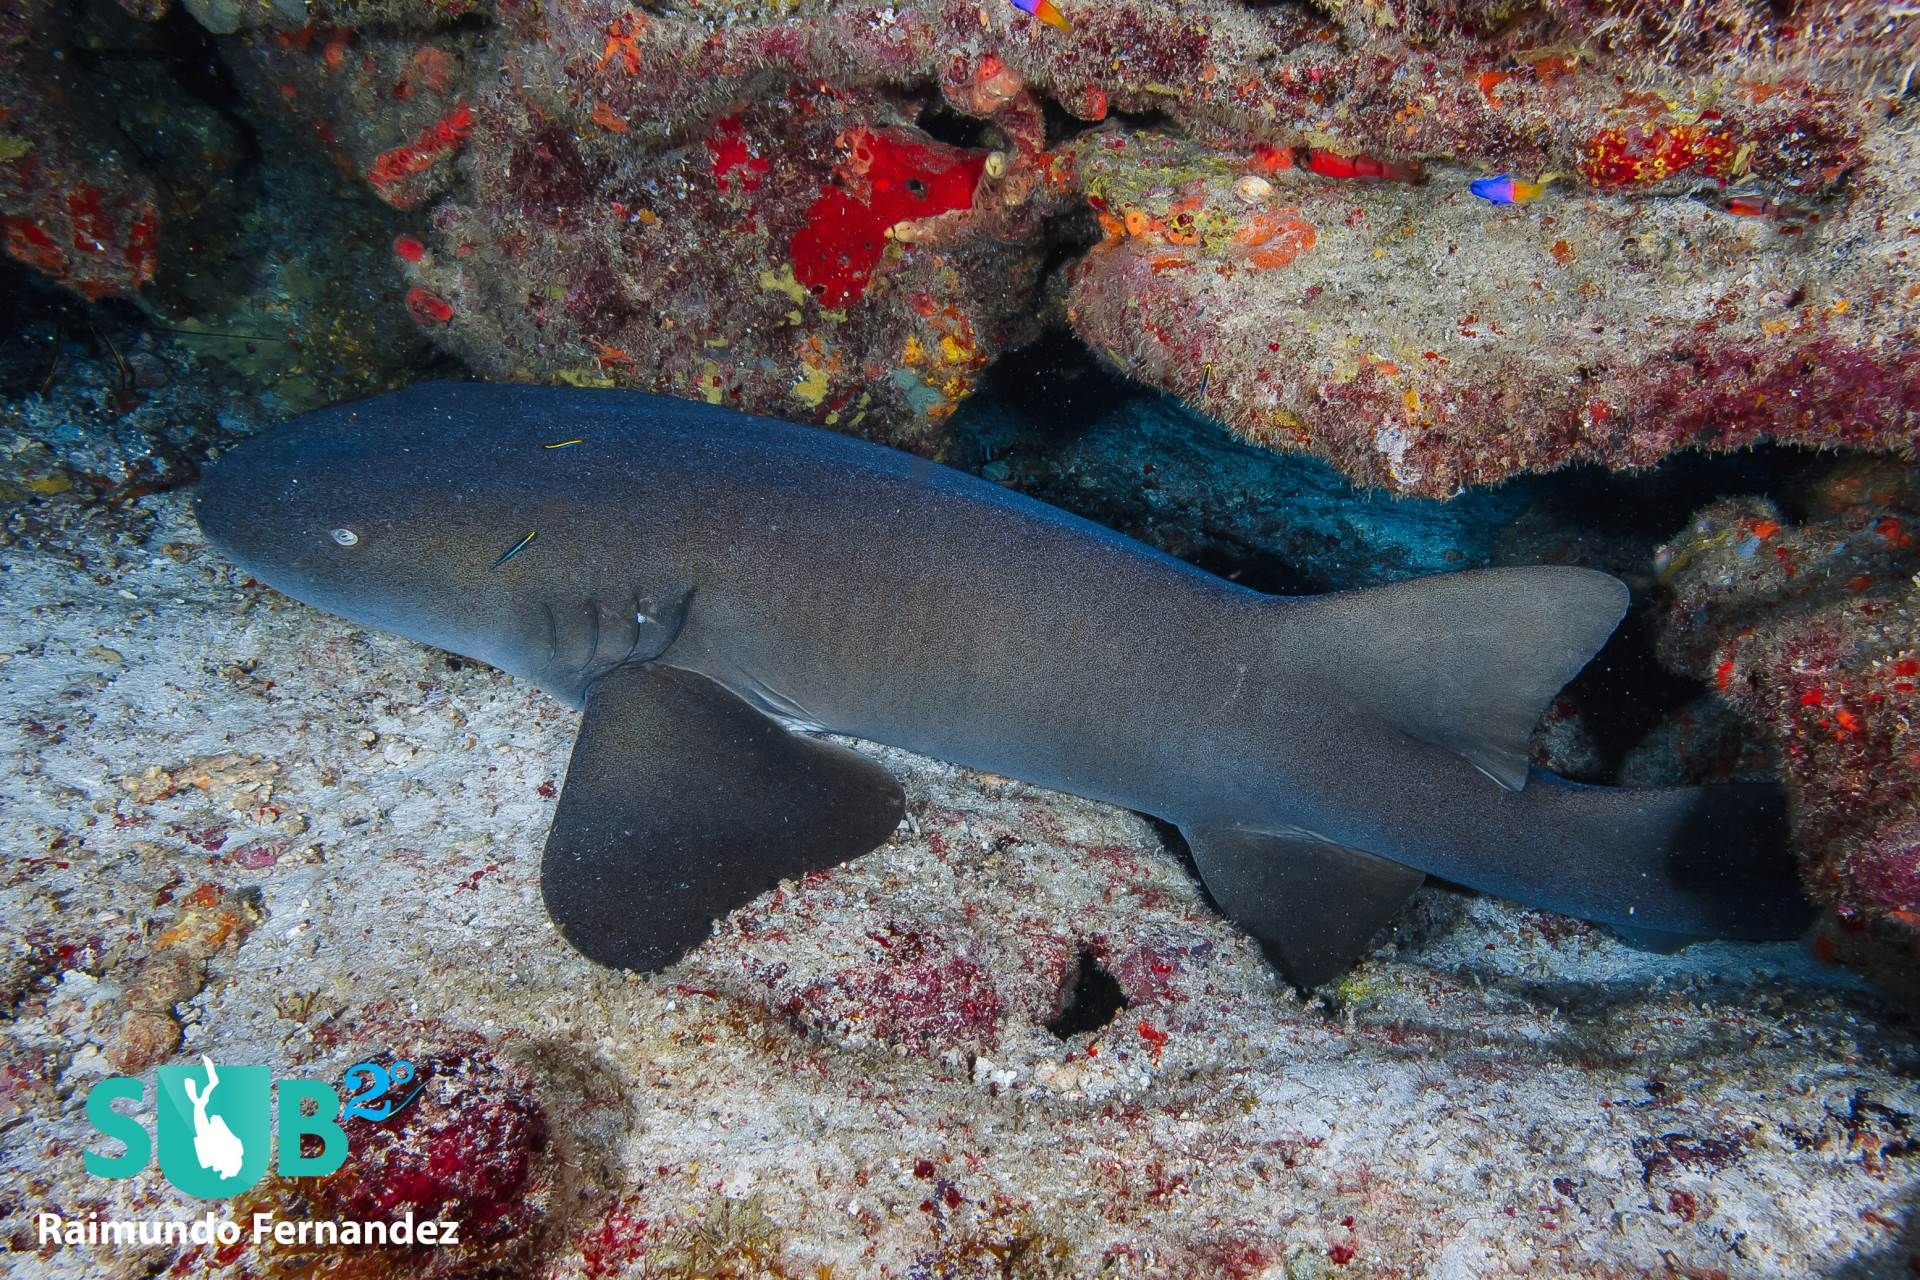 In Grenada, it's common to find nurse sharks chilling around wrecks and reefs.